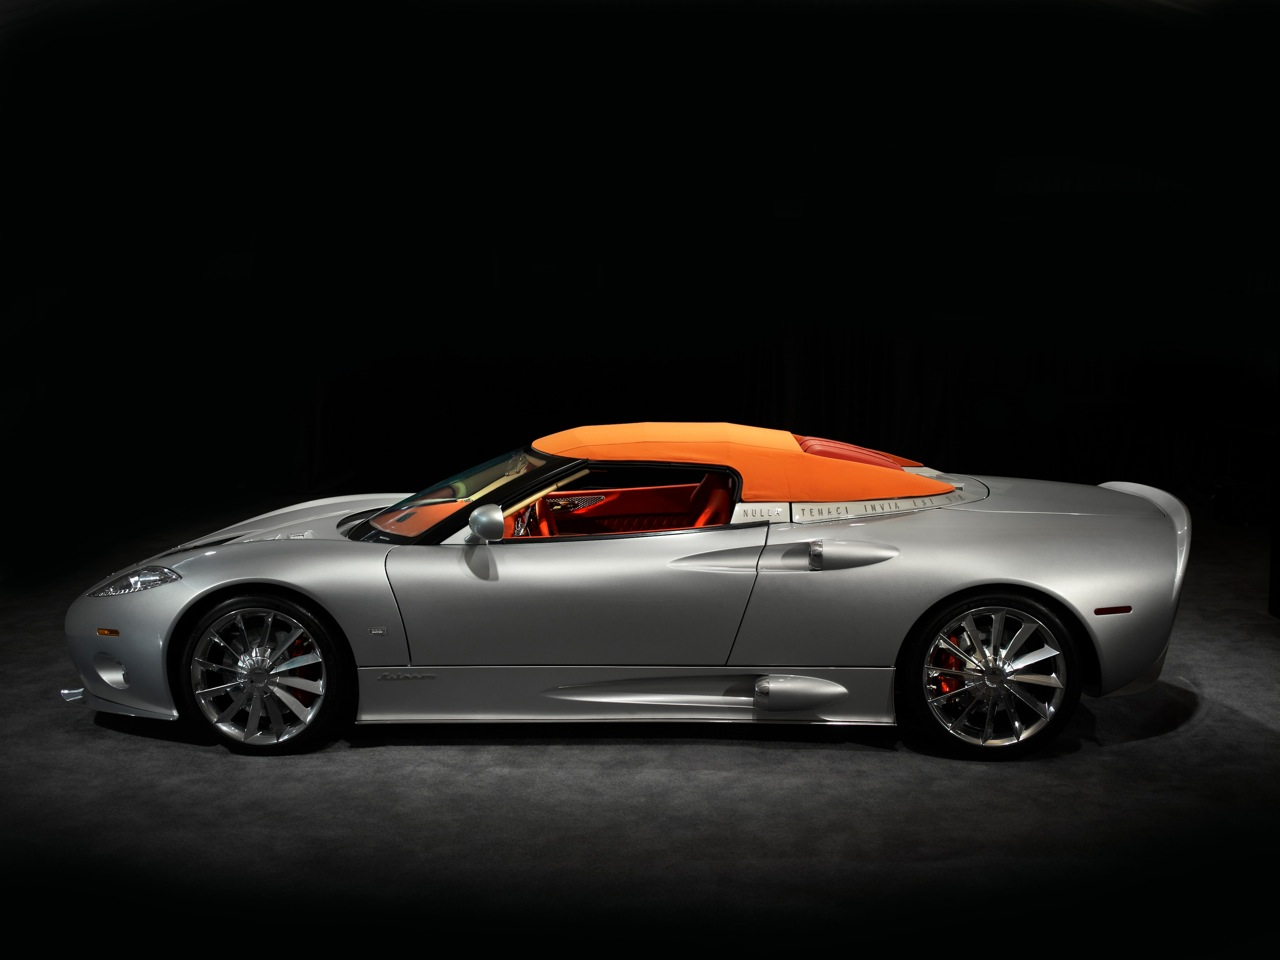 Spyker spyder photo - 8